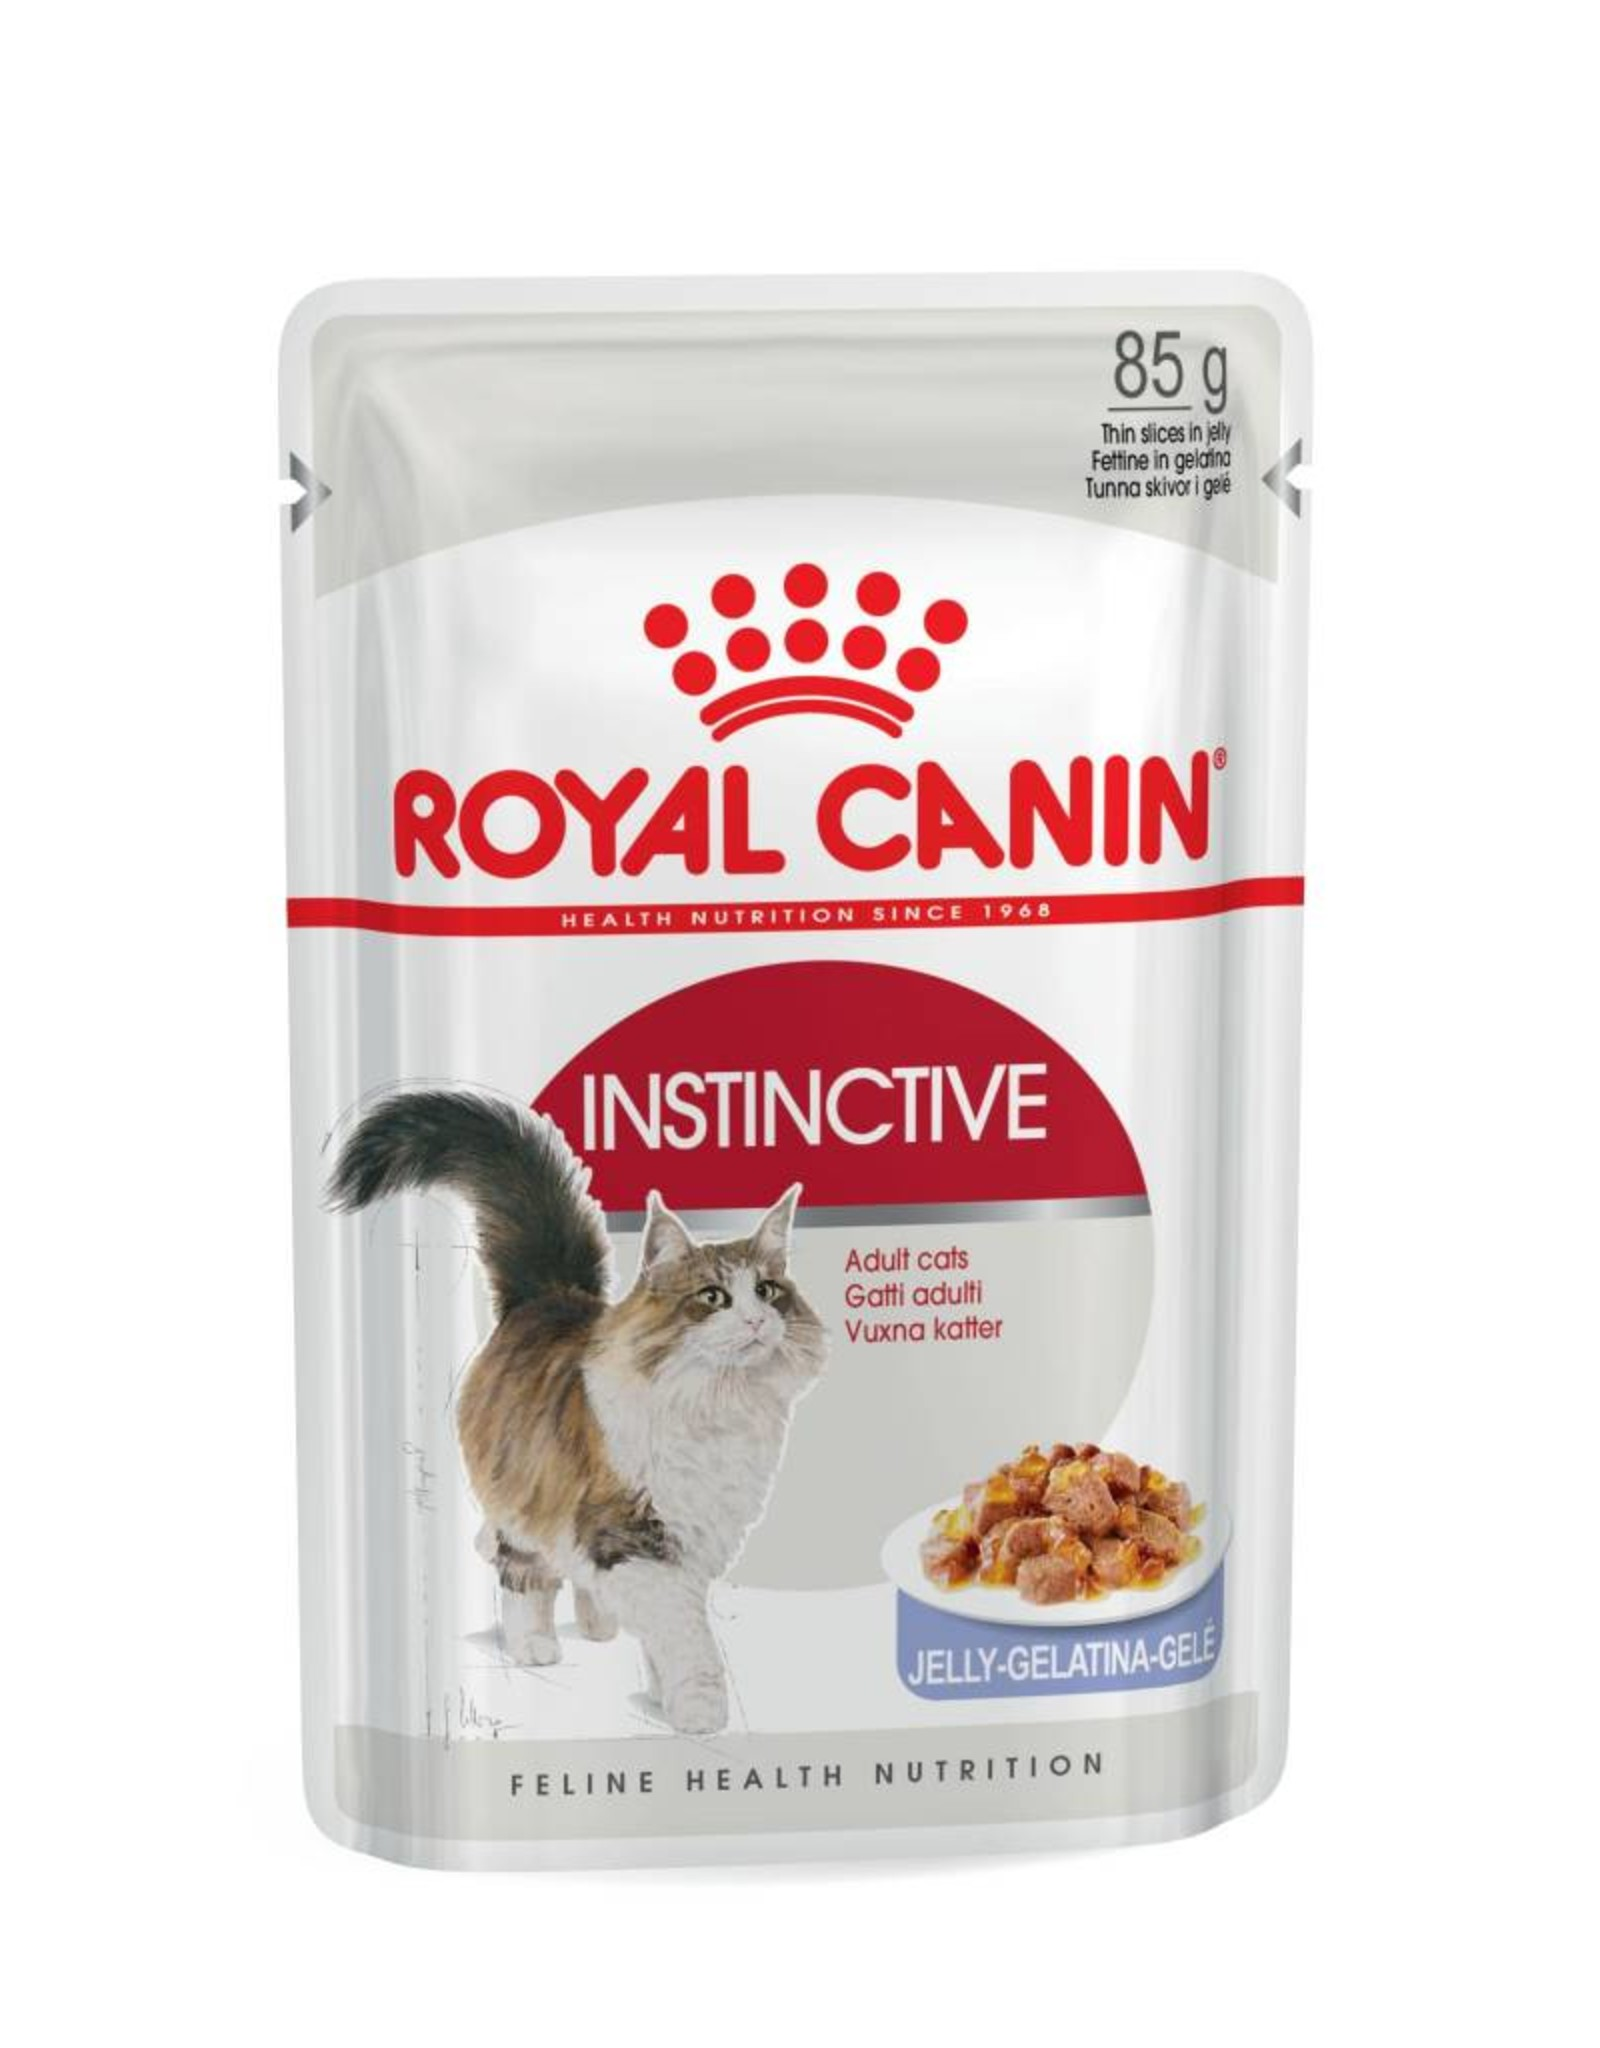 Royal Canin Instinctive Adult Cat Wet Food Pouch with Jelly, 85g